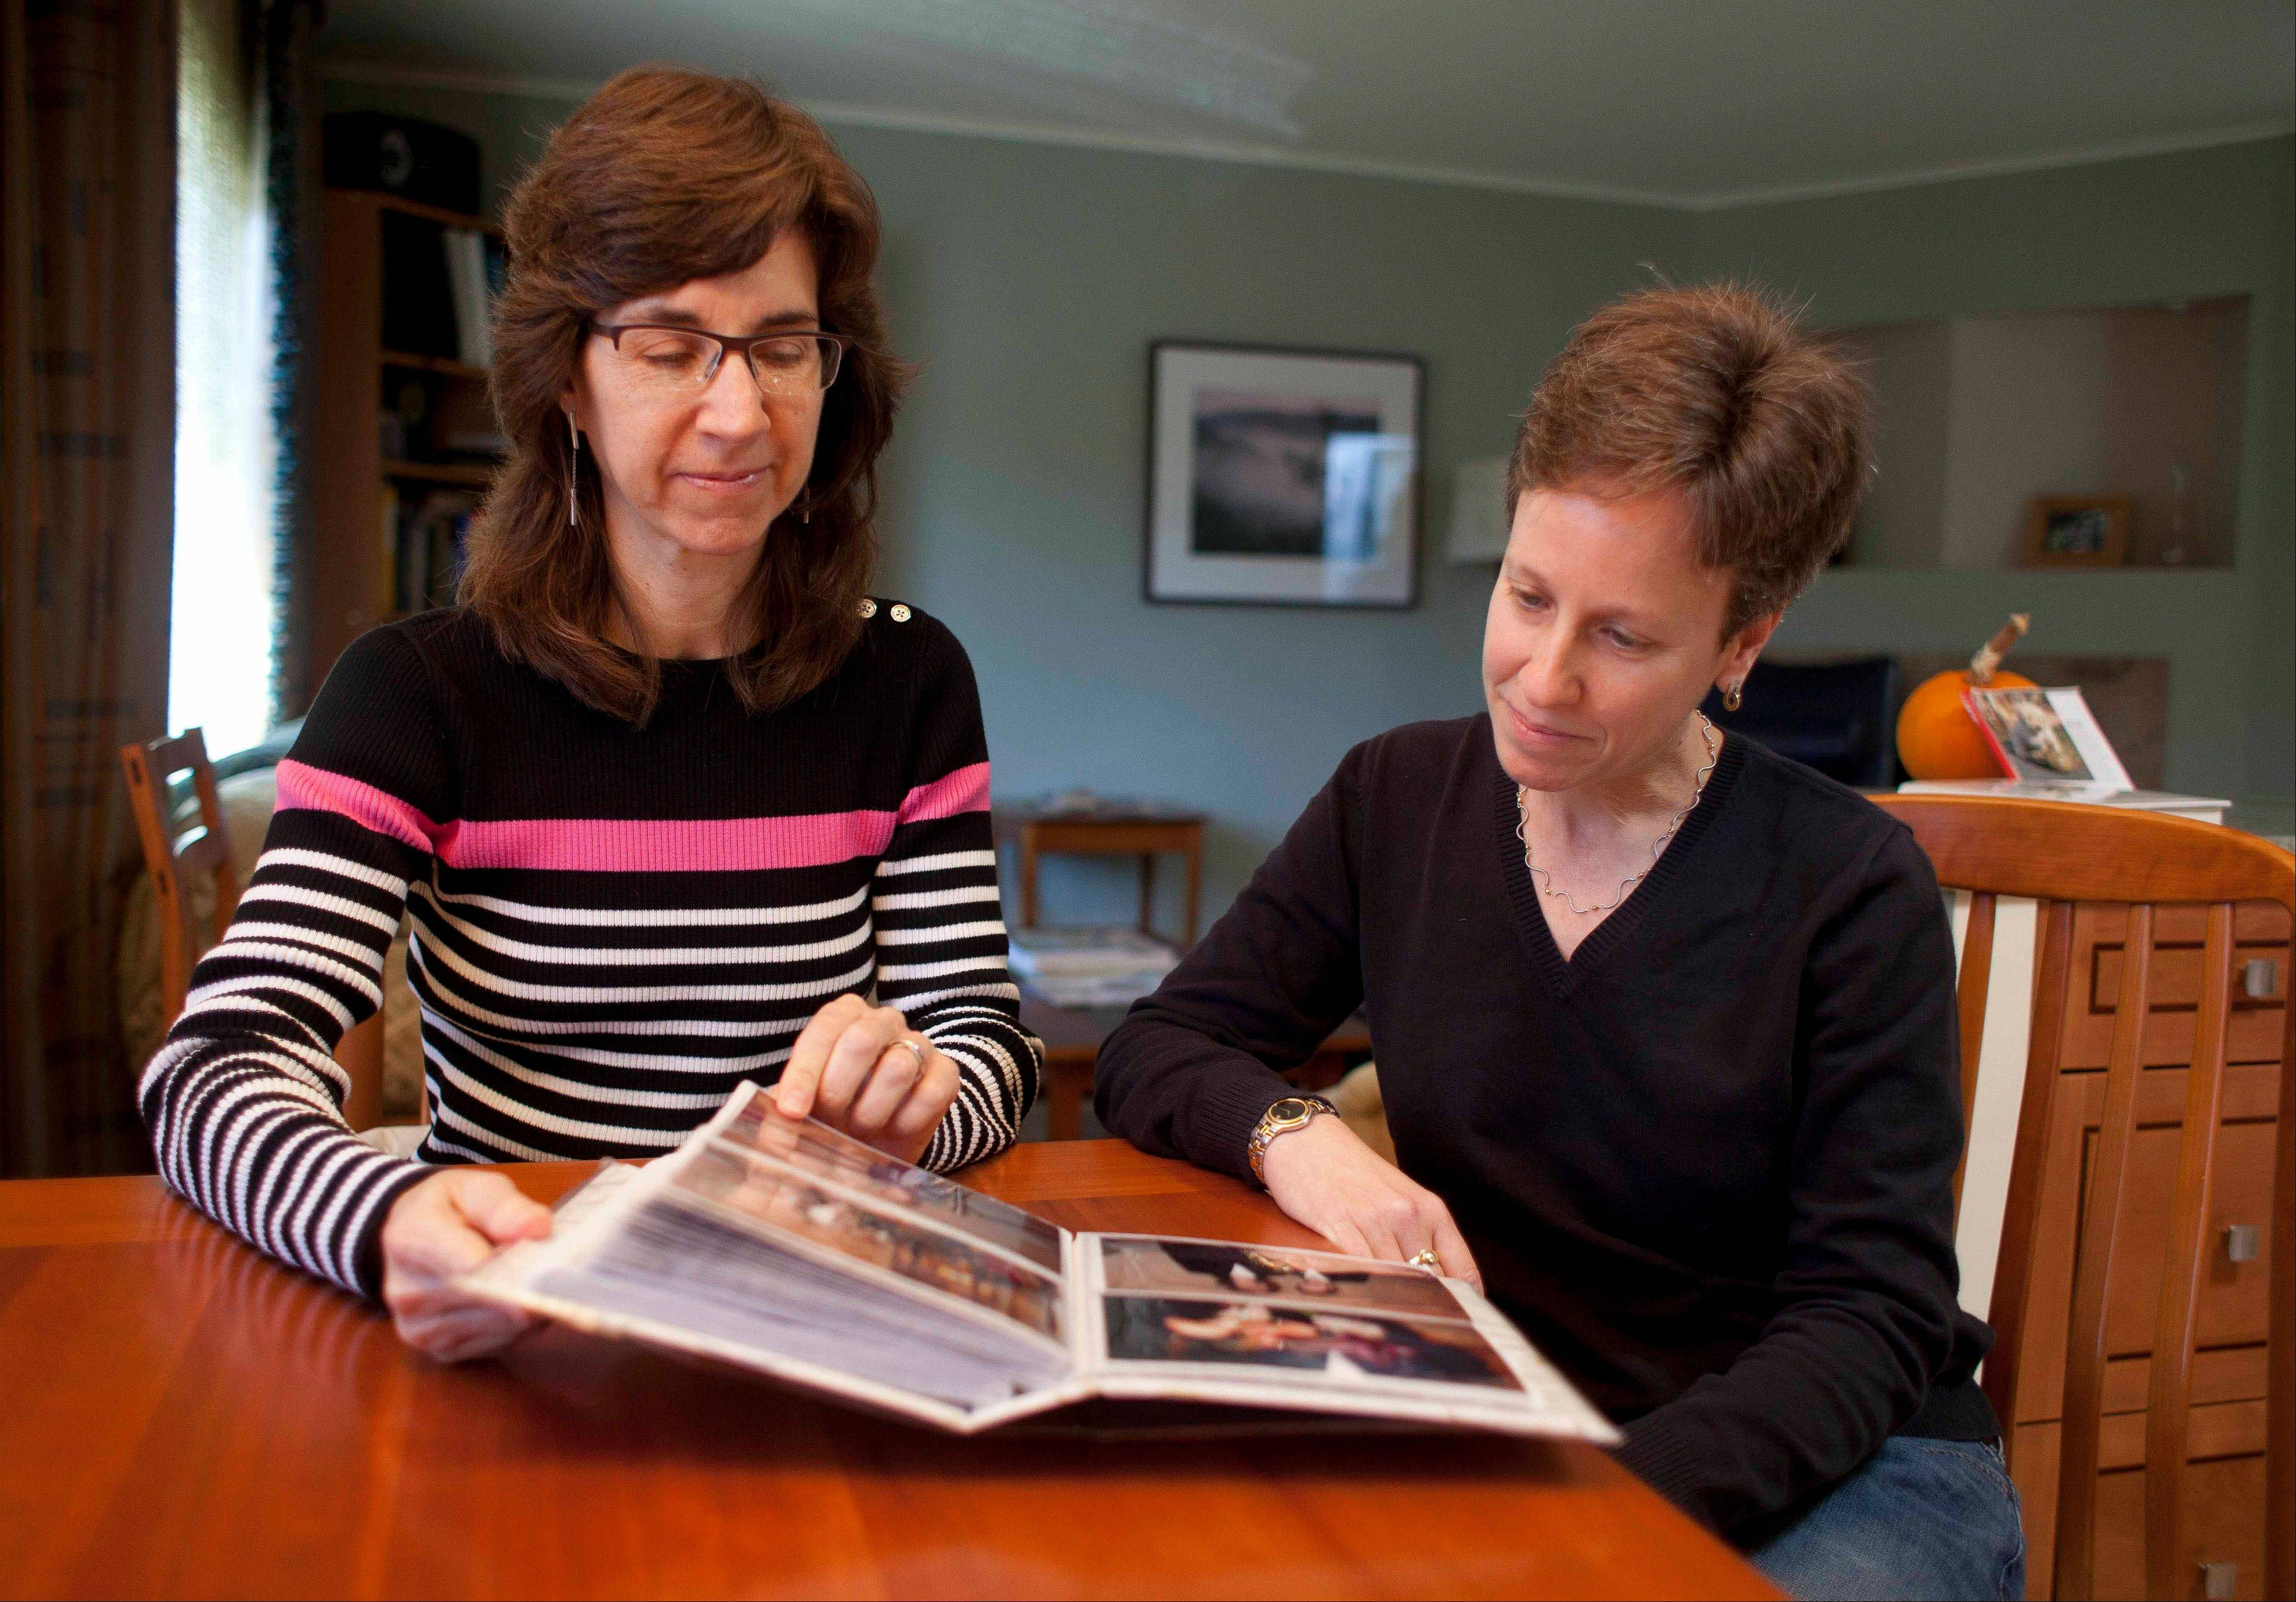 Karen Golinski, left, and Amy Cunninghis, look over a photo album of their wedding photos in San Francisco. All Golinski wanted was to enroll her spouse in her employer-sponsored health plan. Four years later, he